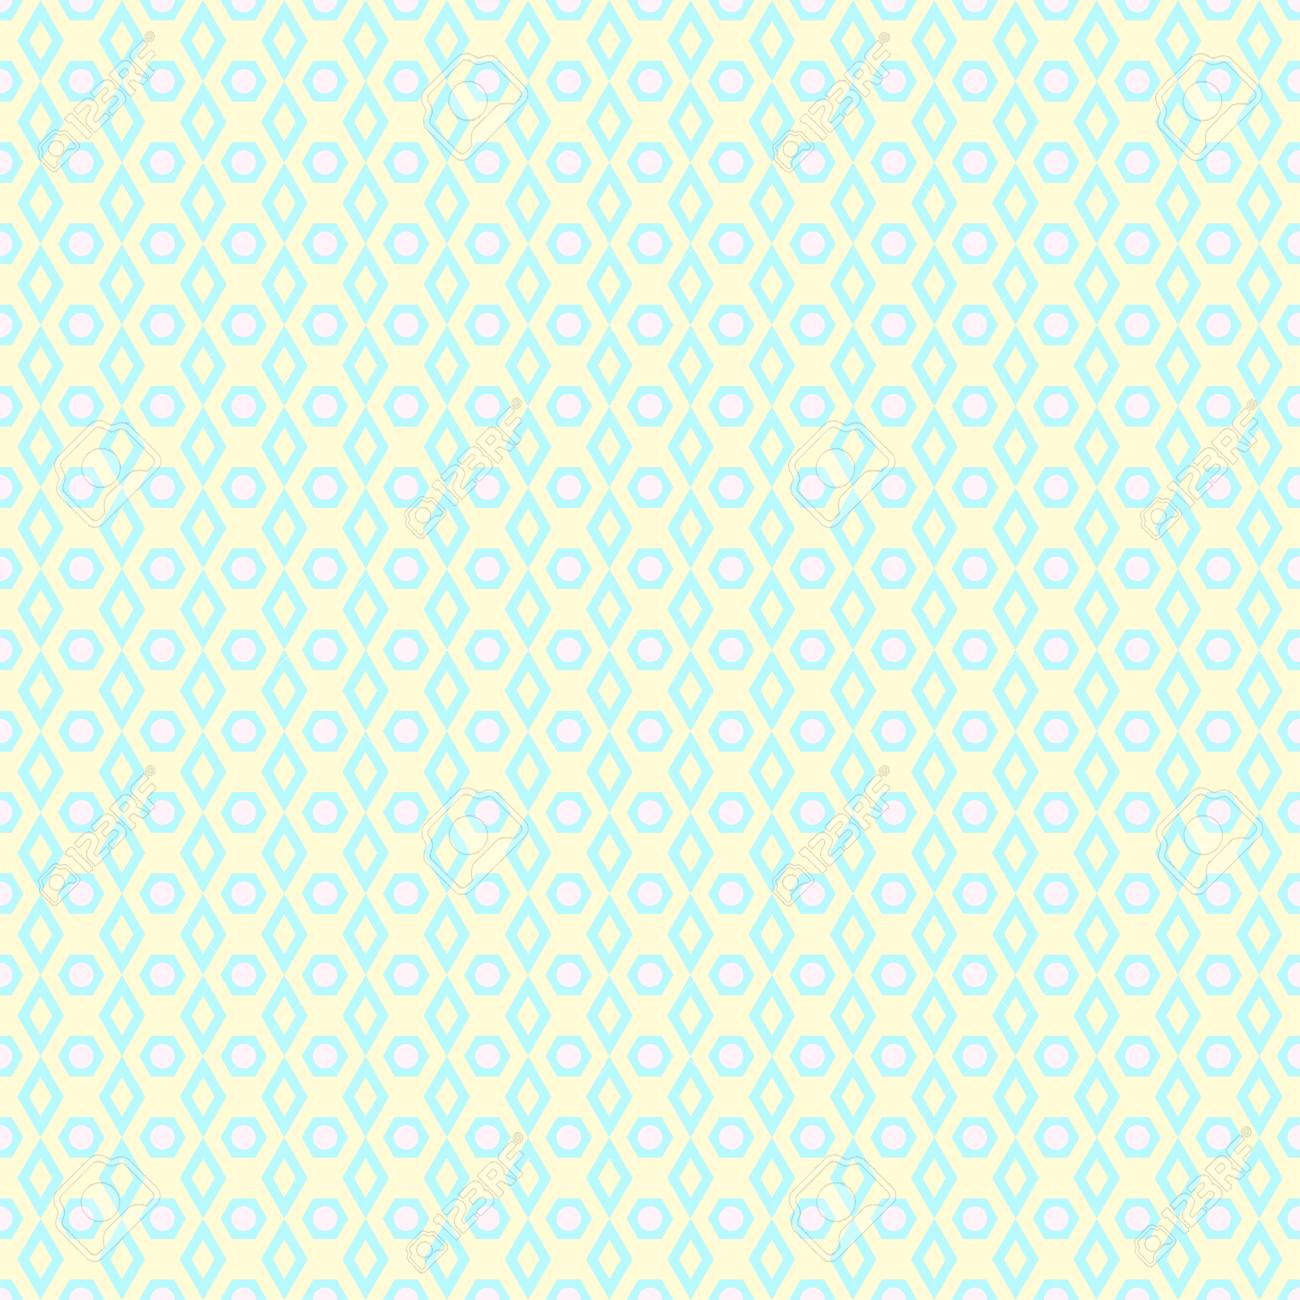 Seamless Background Abstract Geometric Wallpaper With Simple